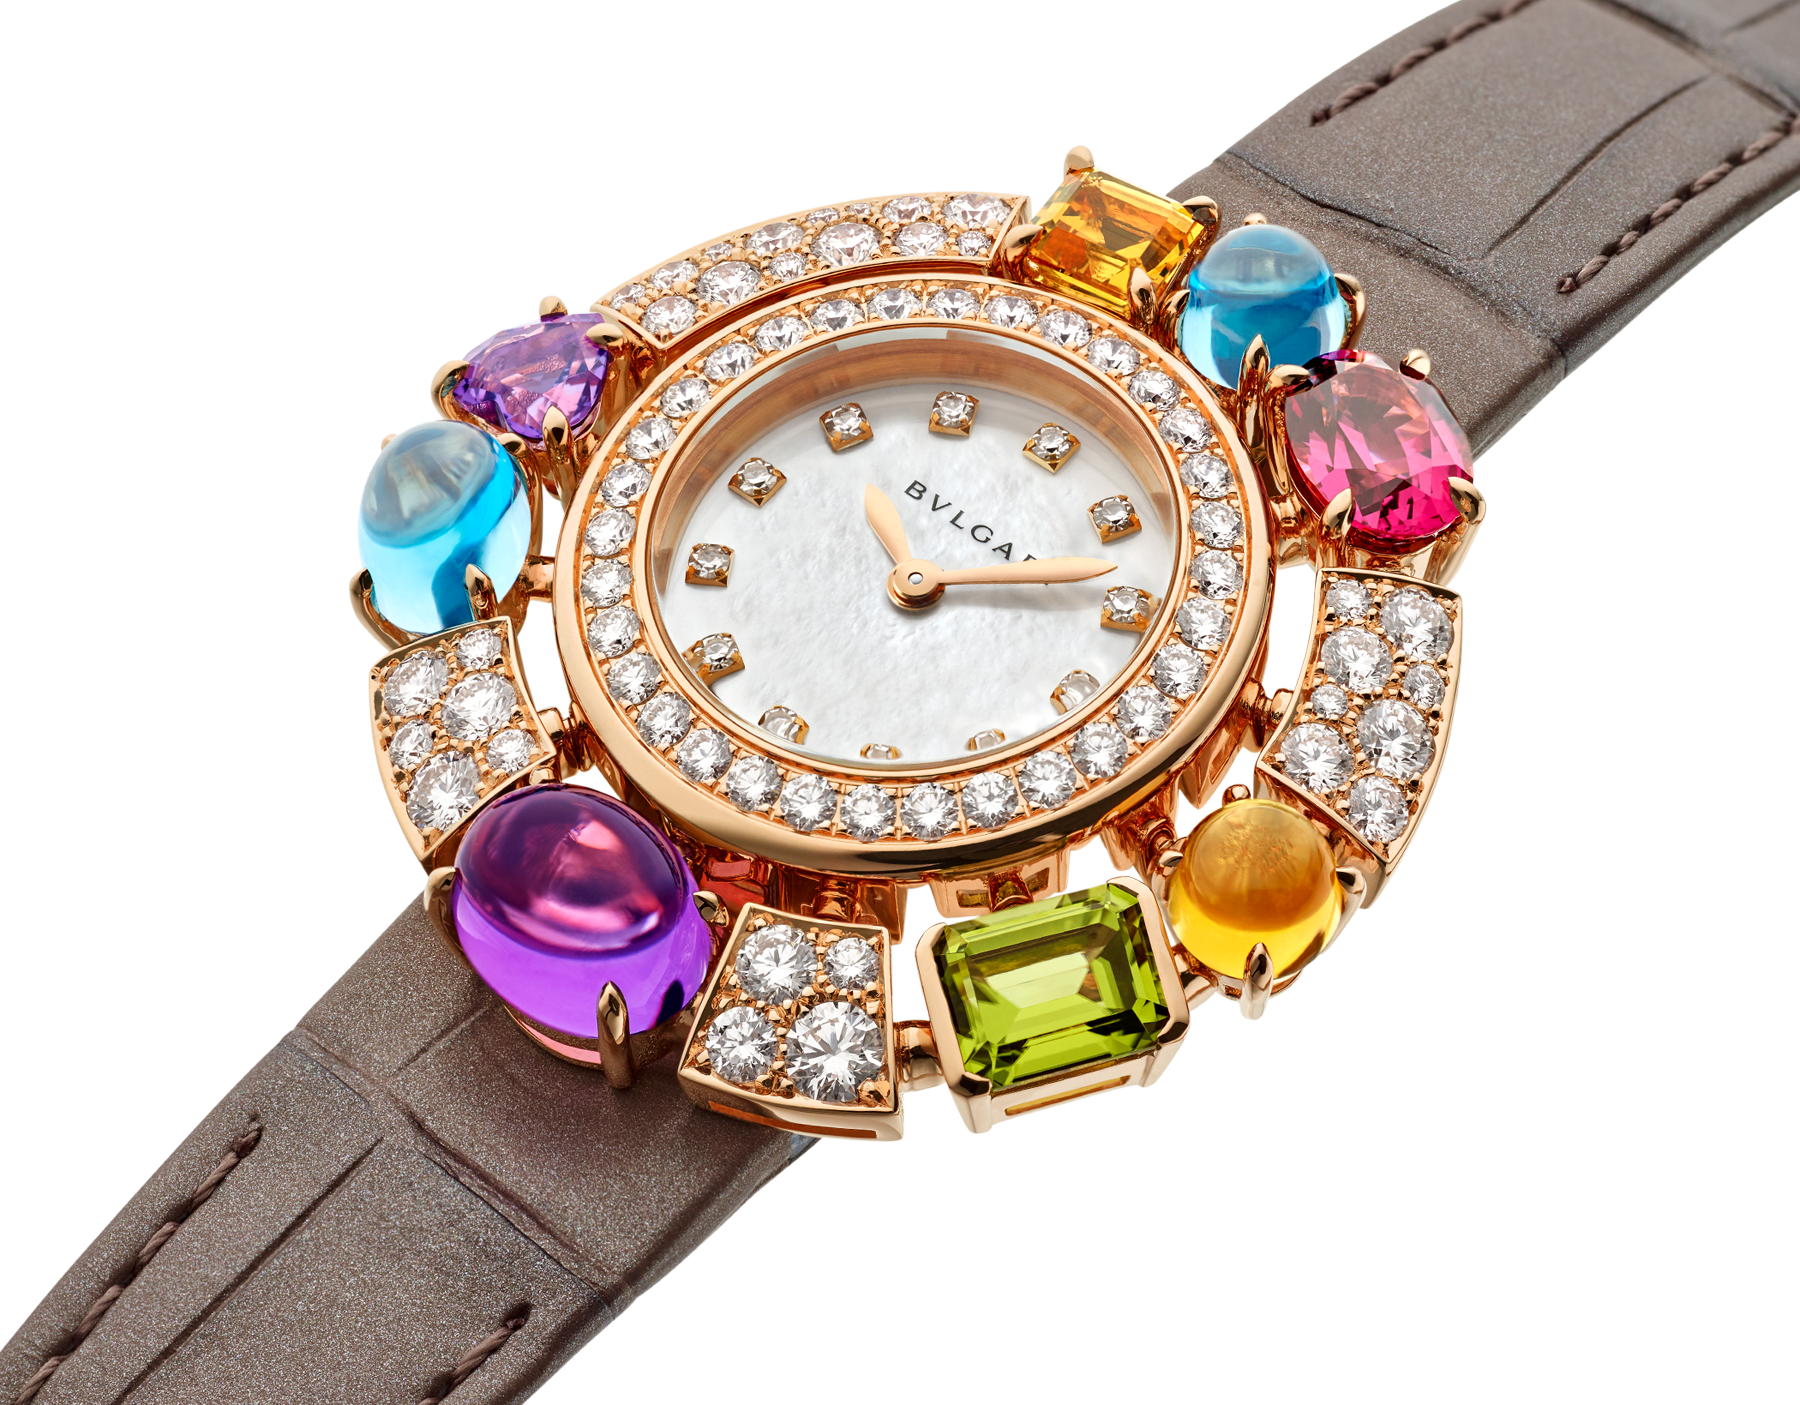 Allegra High Jewelry watch with 18 kt rose gold case set with brilliant-cut diamonds, two citrines, two amethysts, a peridot, two blue topazes and a rhodolite, mother-of-pearl dial, diamond indexes and shiny taupe alligator bracelet. Water-resistant up to 30 meters. 103493 image 2